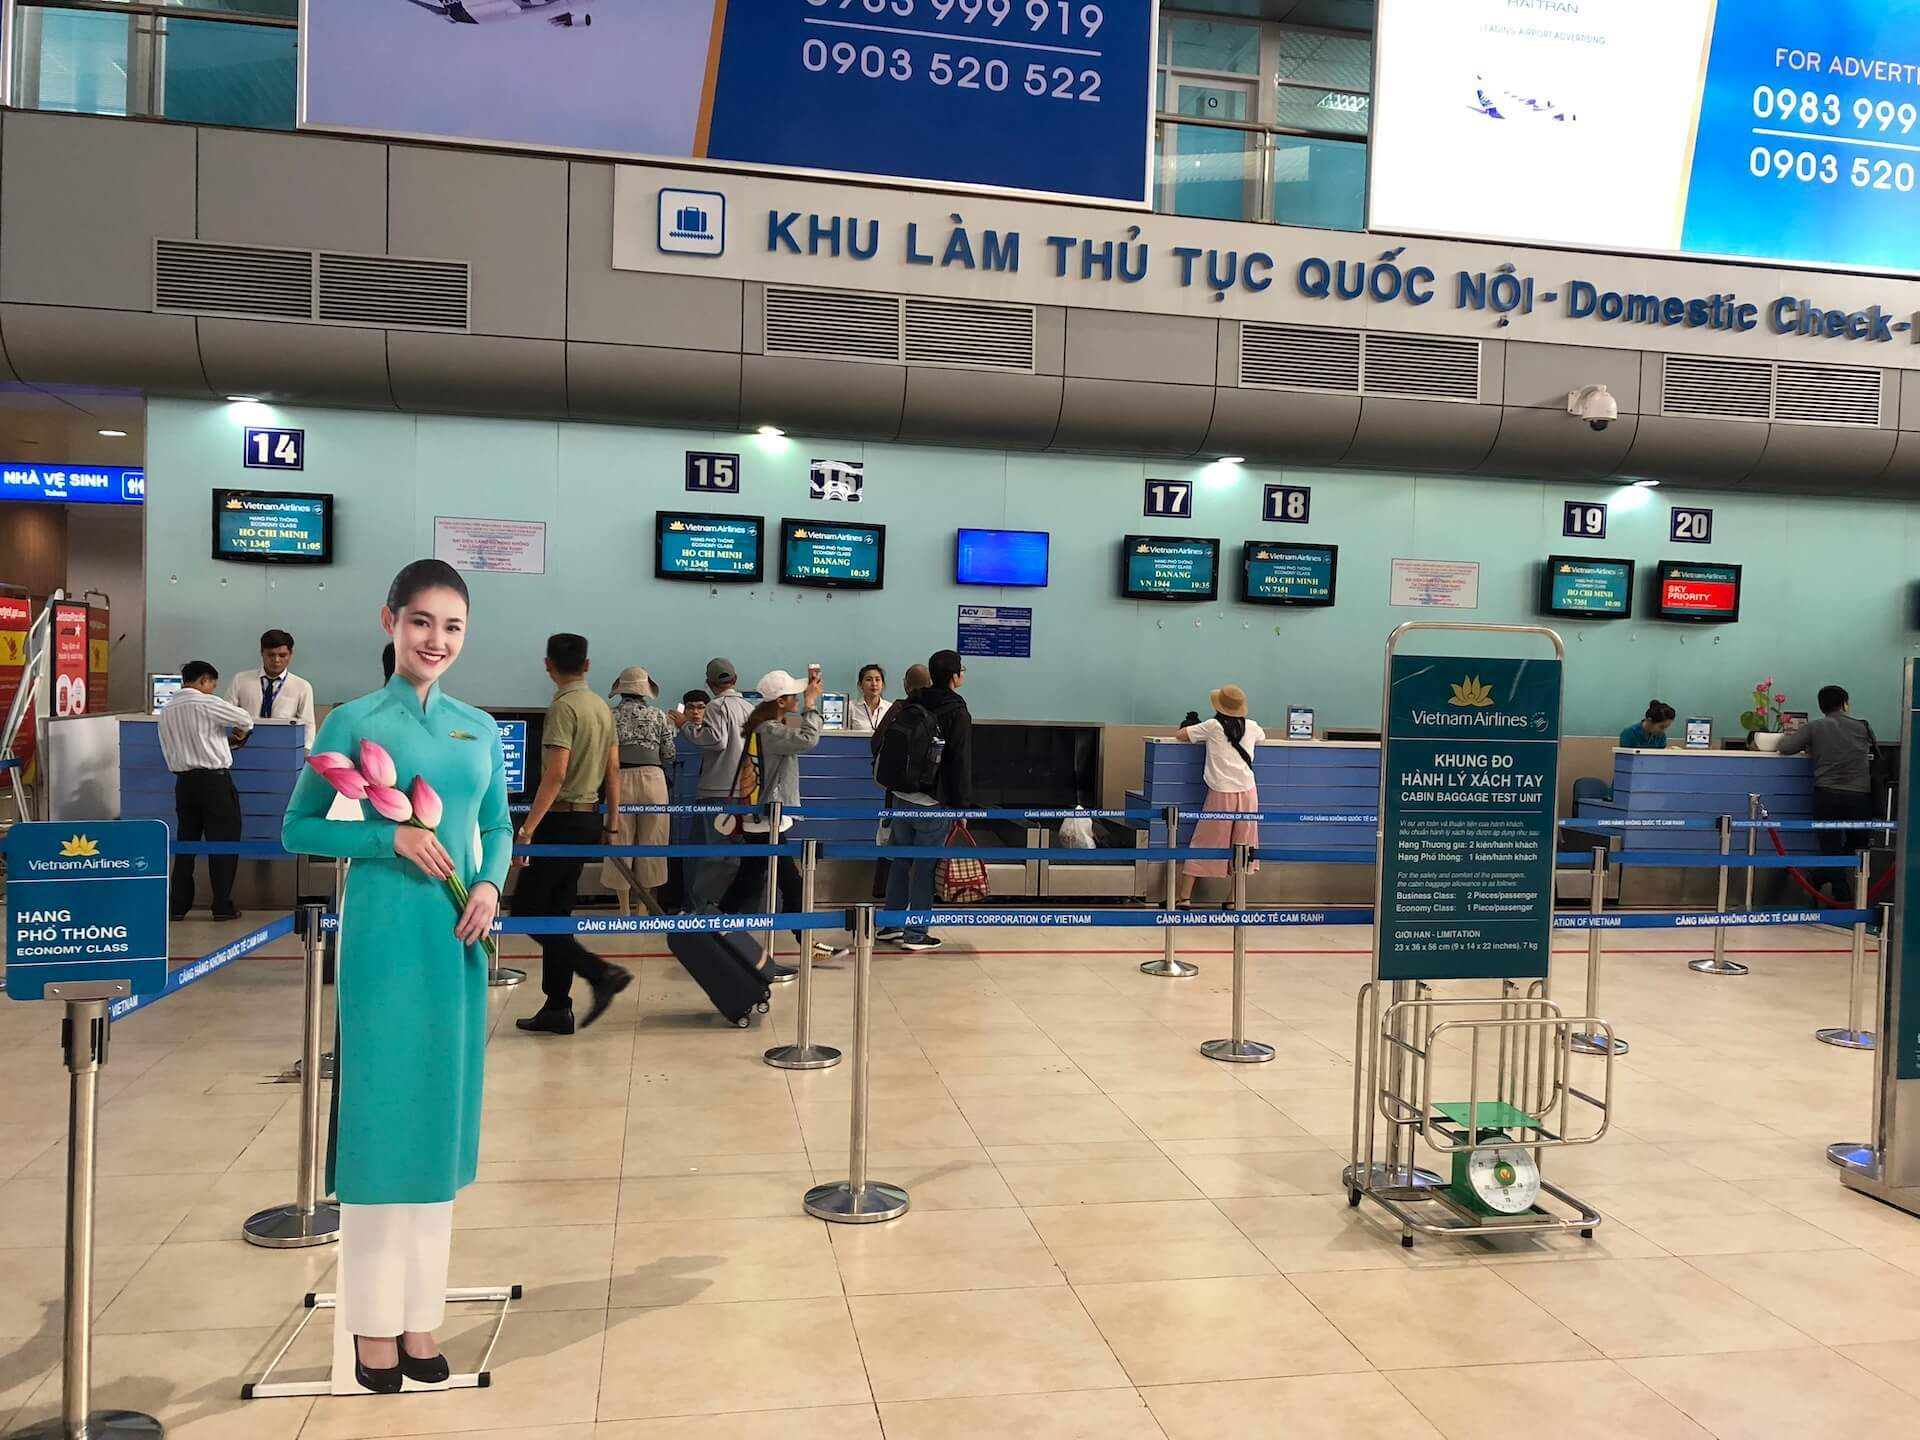 Vietnam Airlines Economy Class Check-In